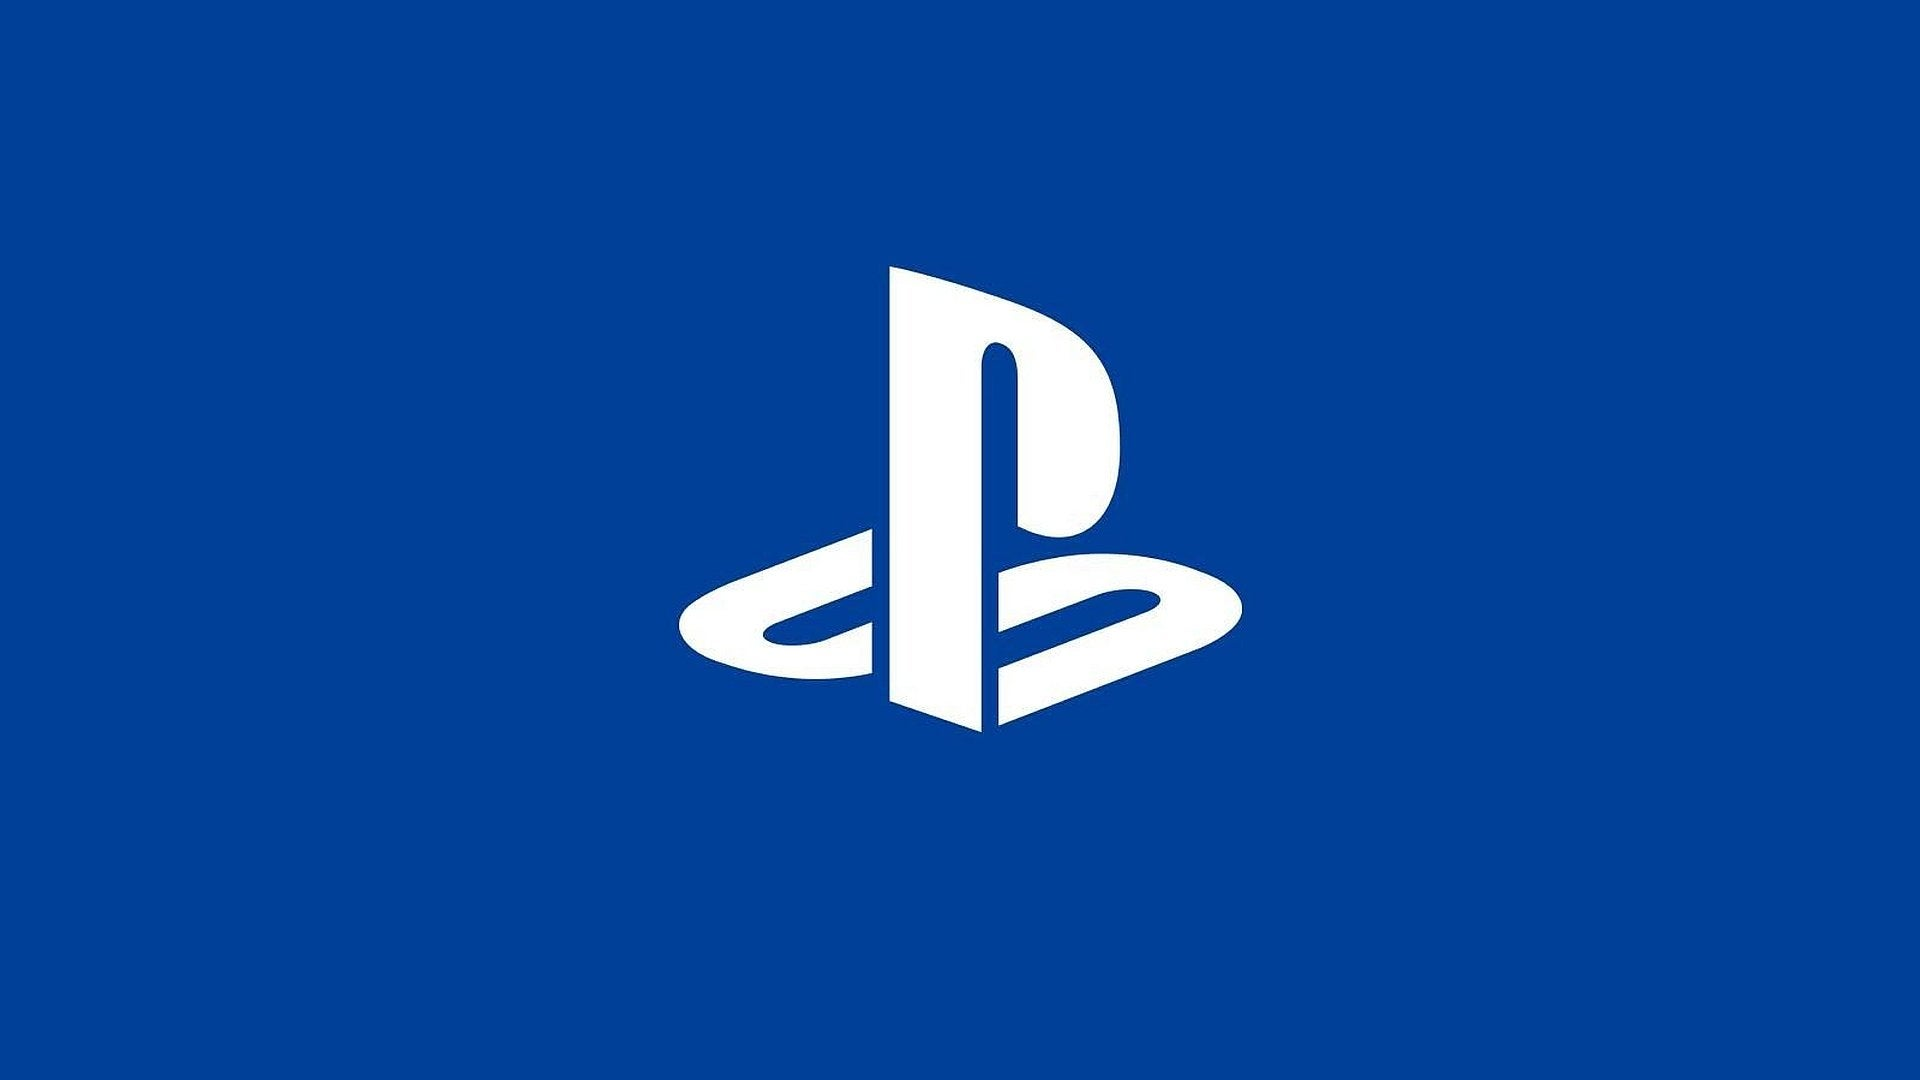 The PS5 is official and it's coming at the end of 2020, Sony confirms